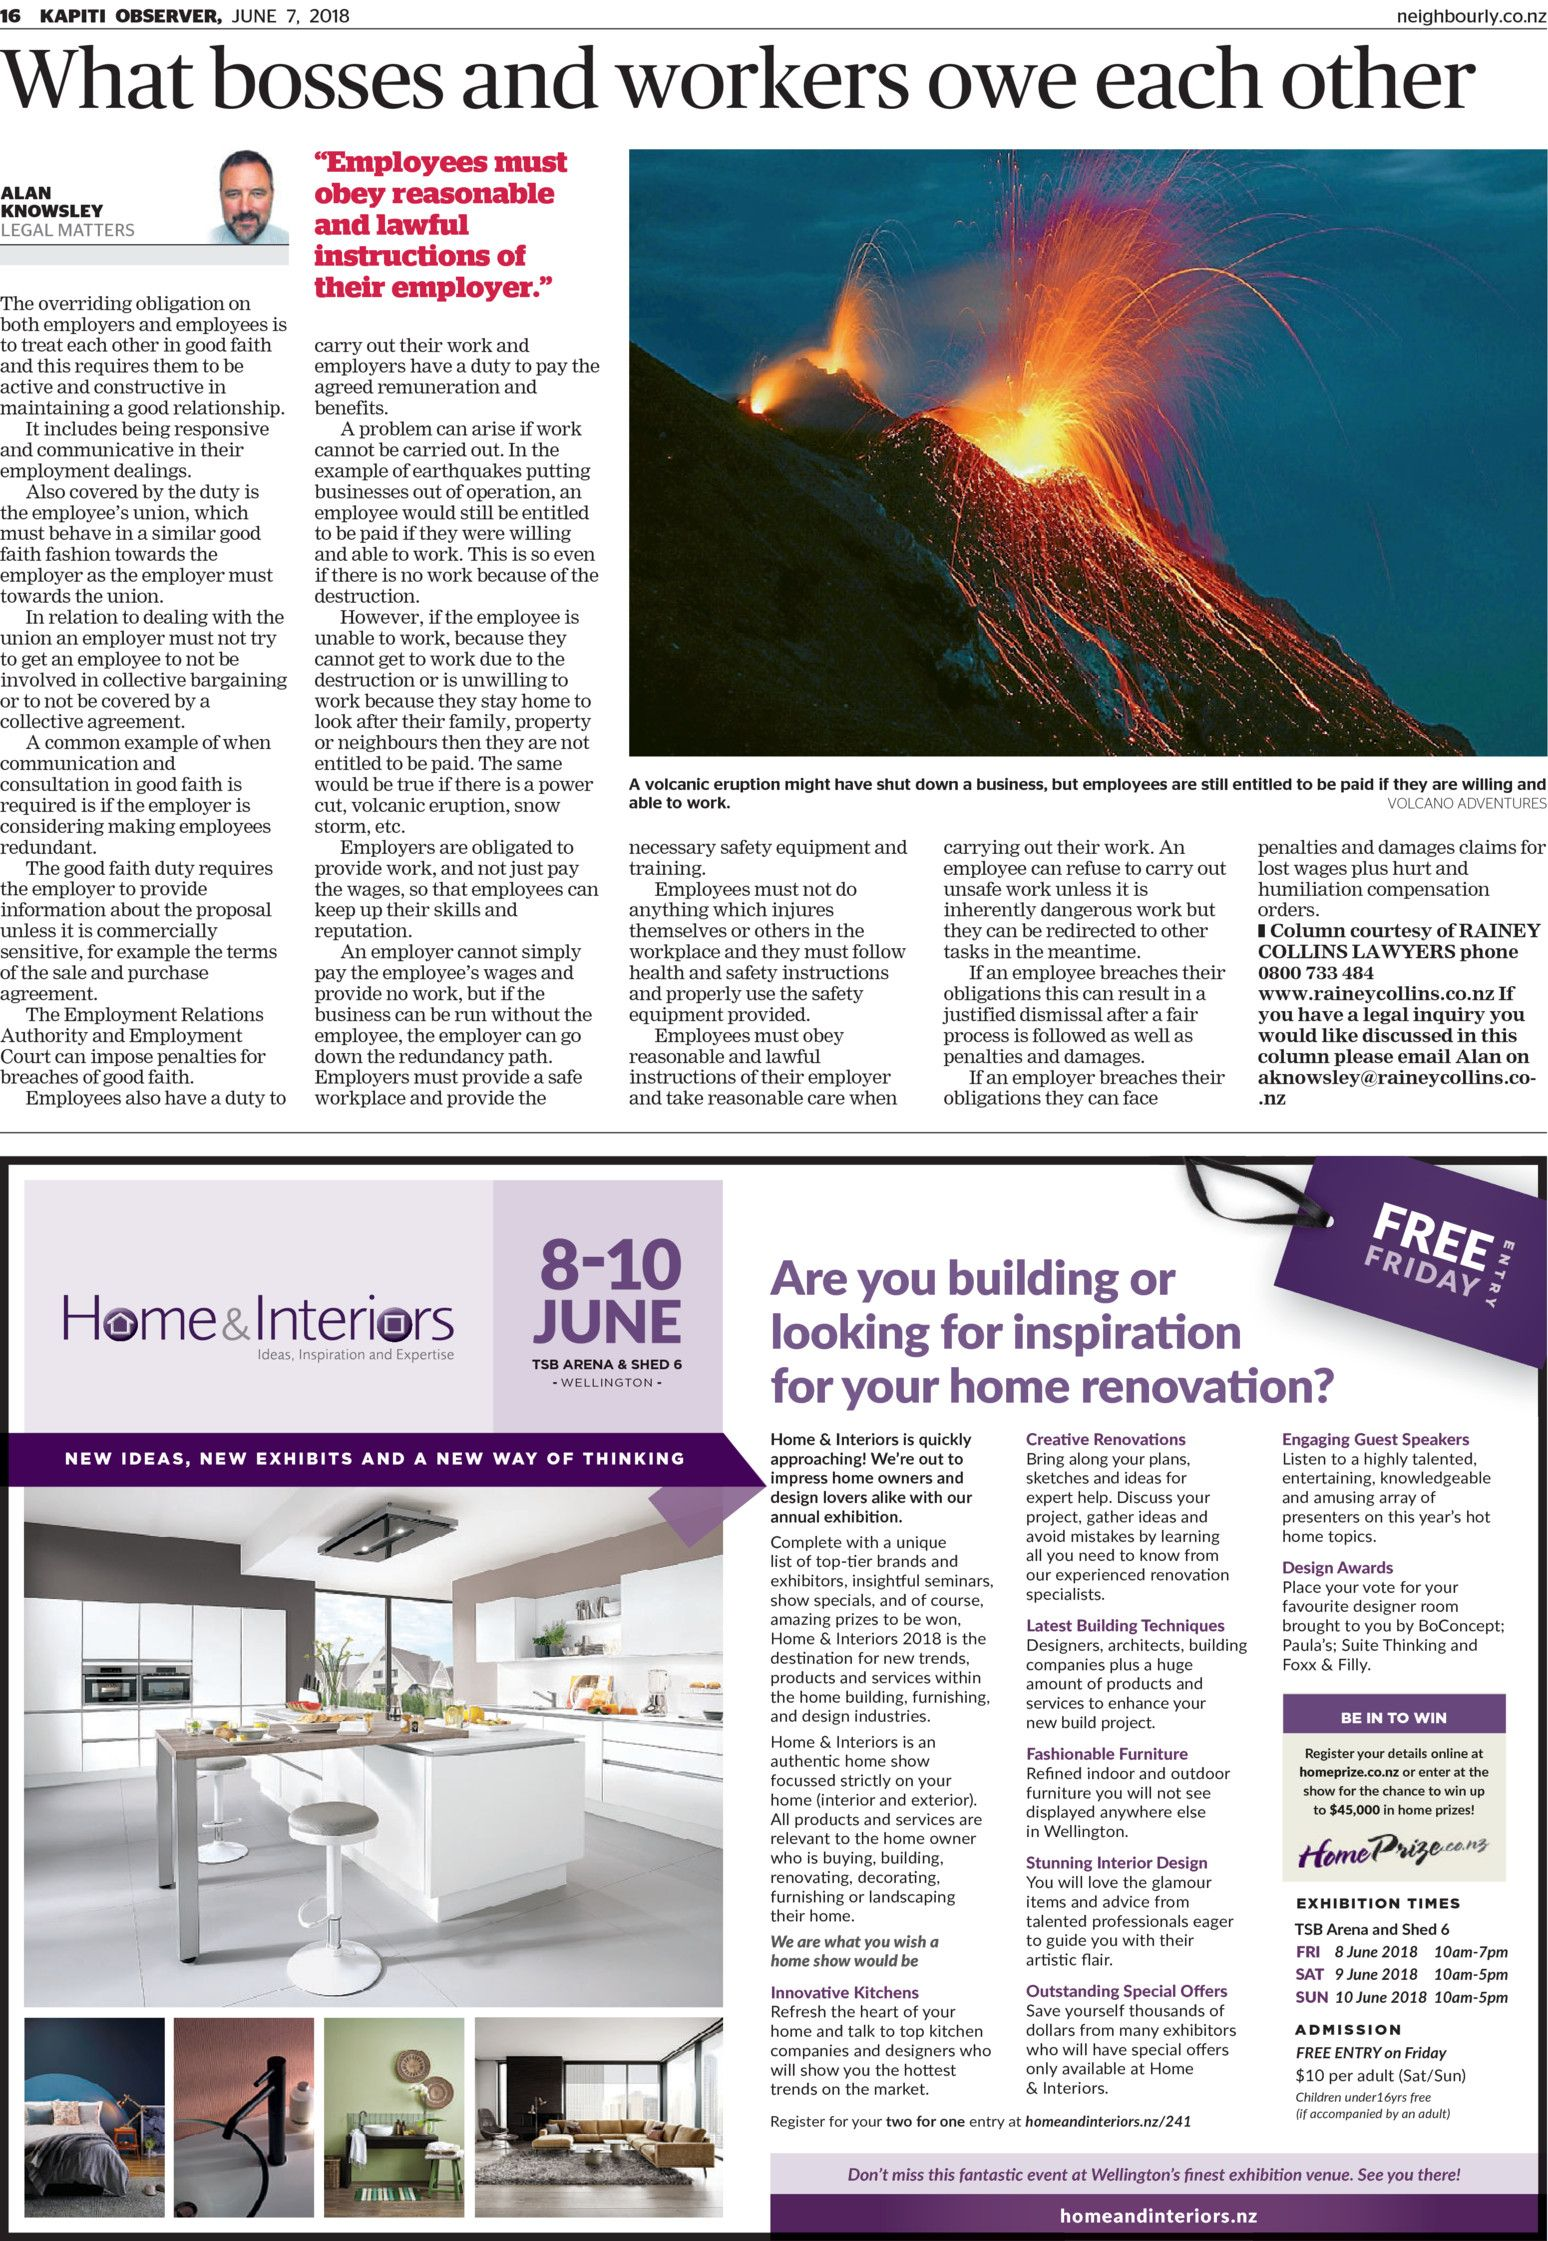 Kpiti Observer Read Online On Neighbourly Shield Volcano Diagram With Labels Quotes